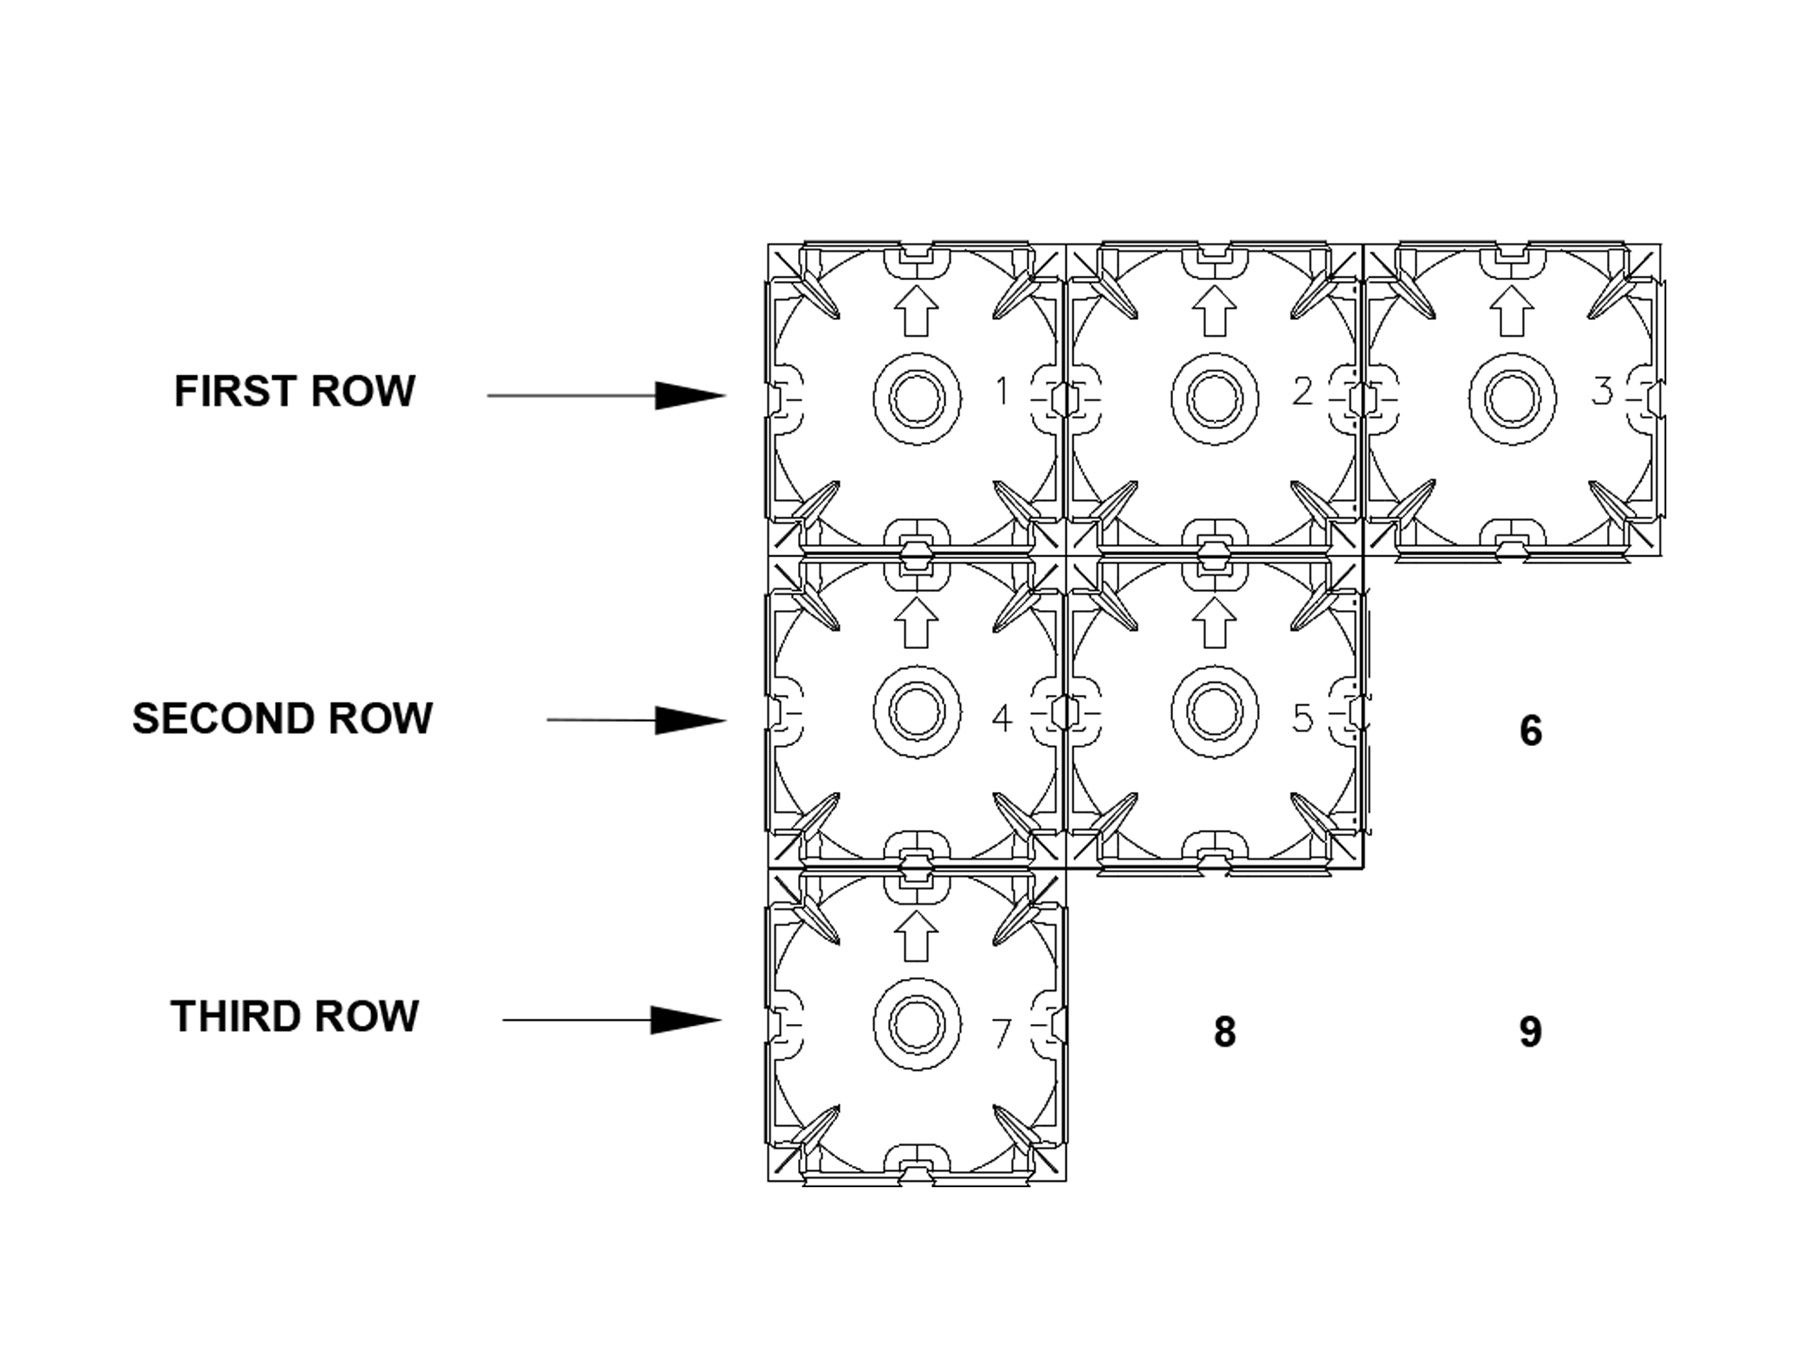 cupolex row plan